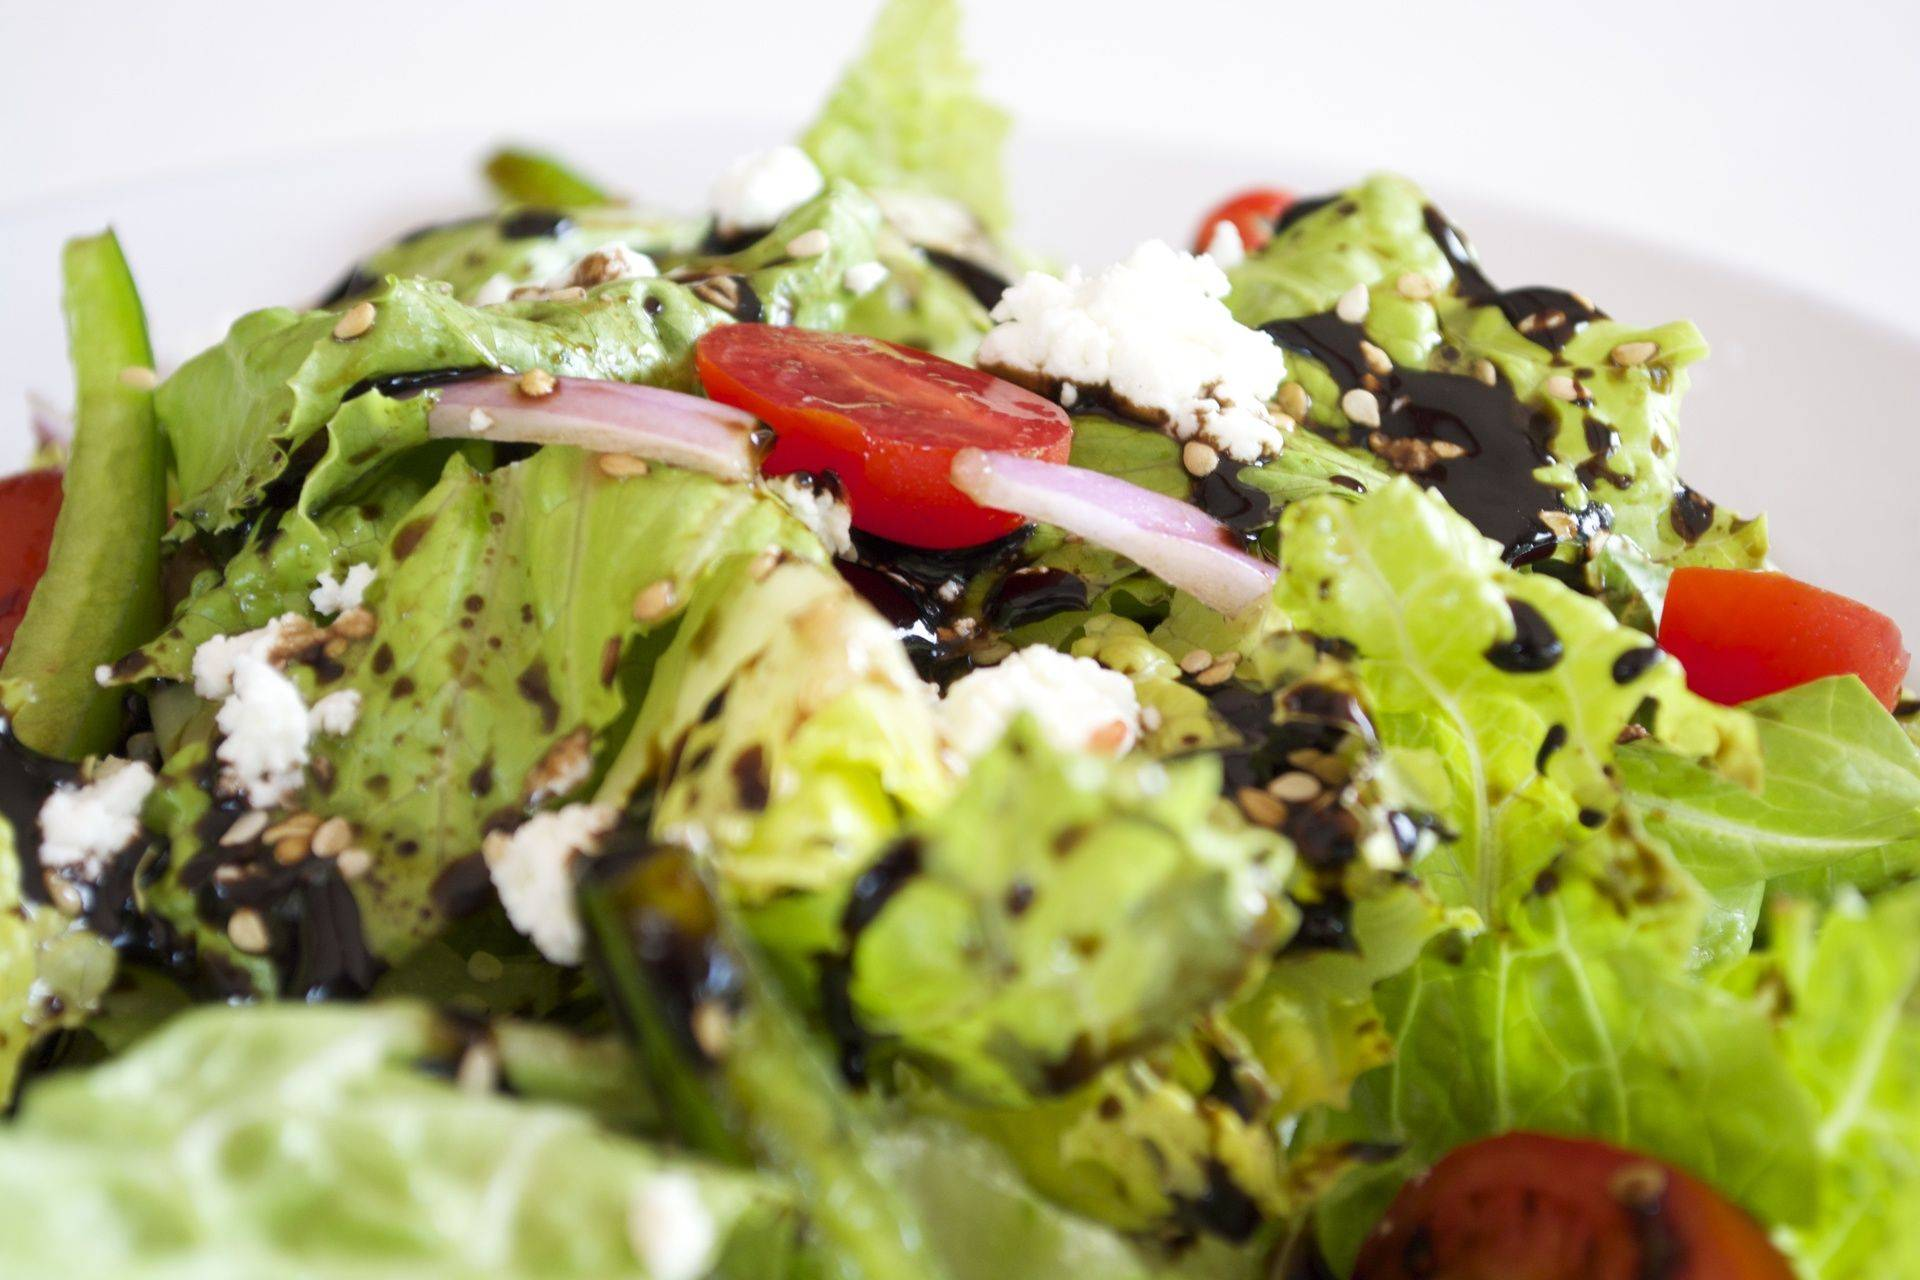 chac mool salad and goat cheese